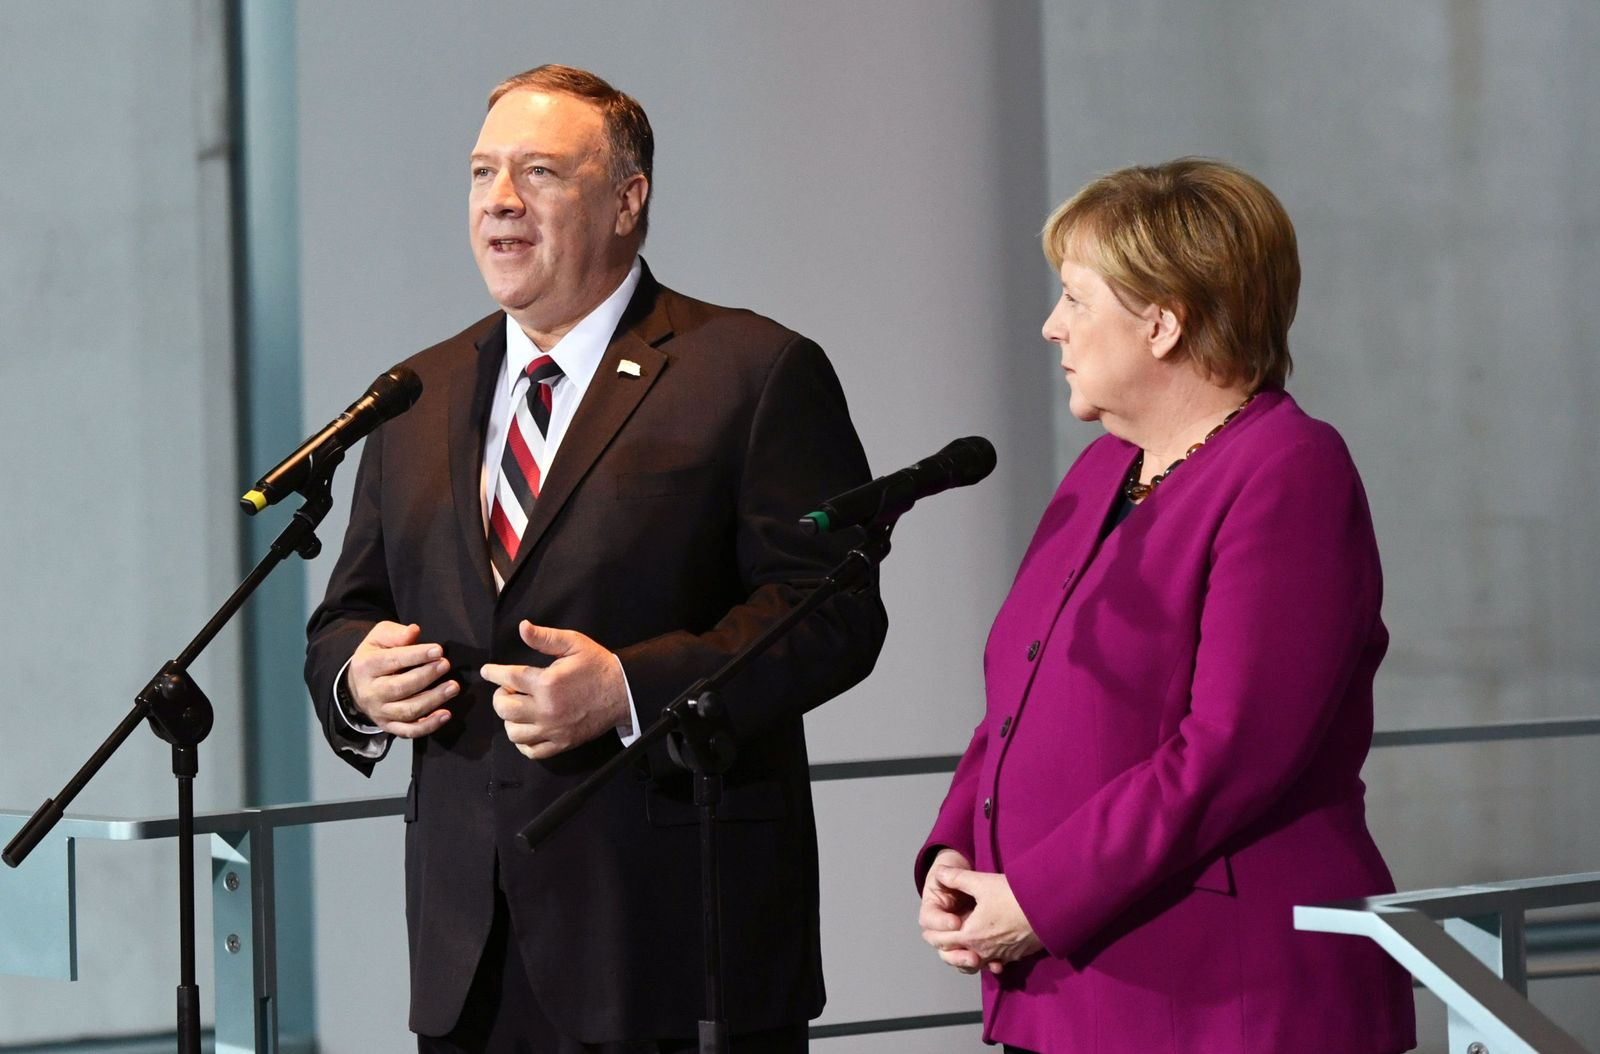 GERMANY-EU/POMPEO